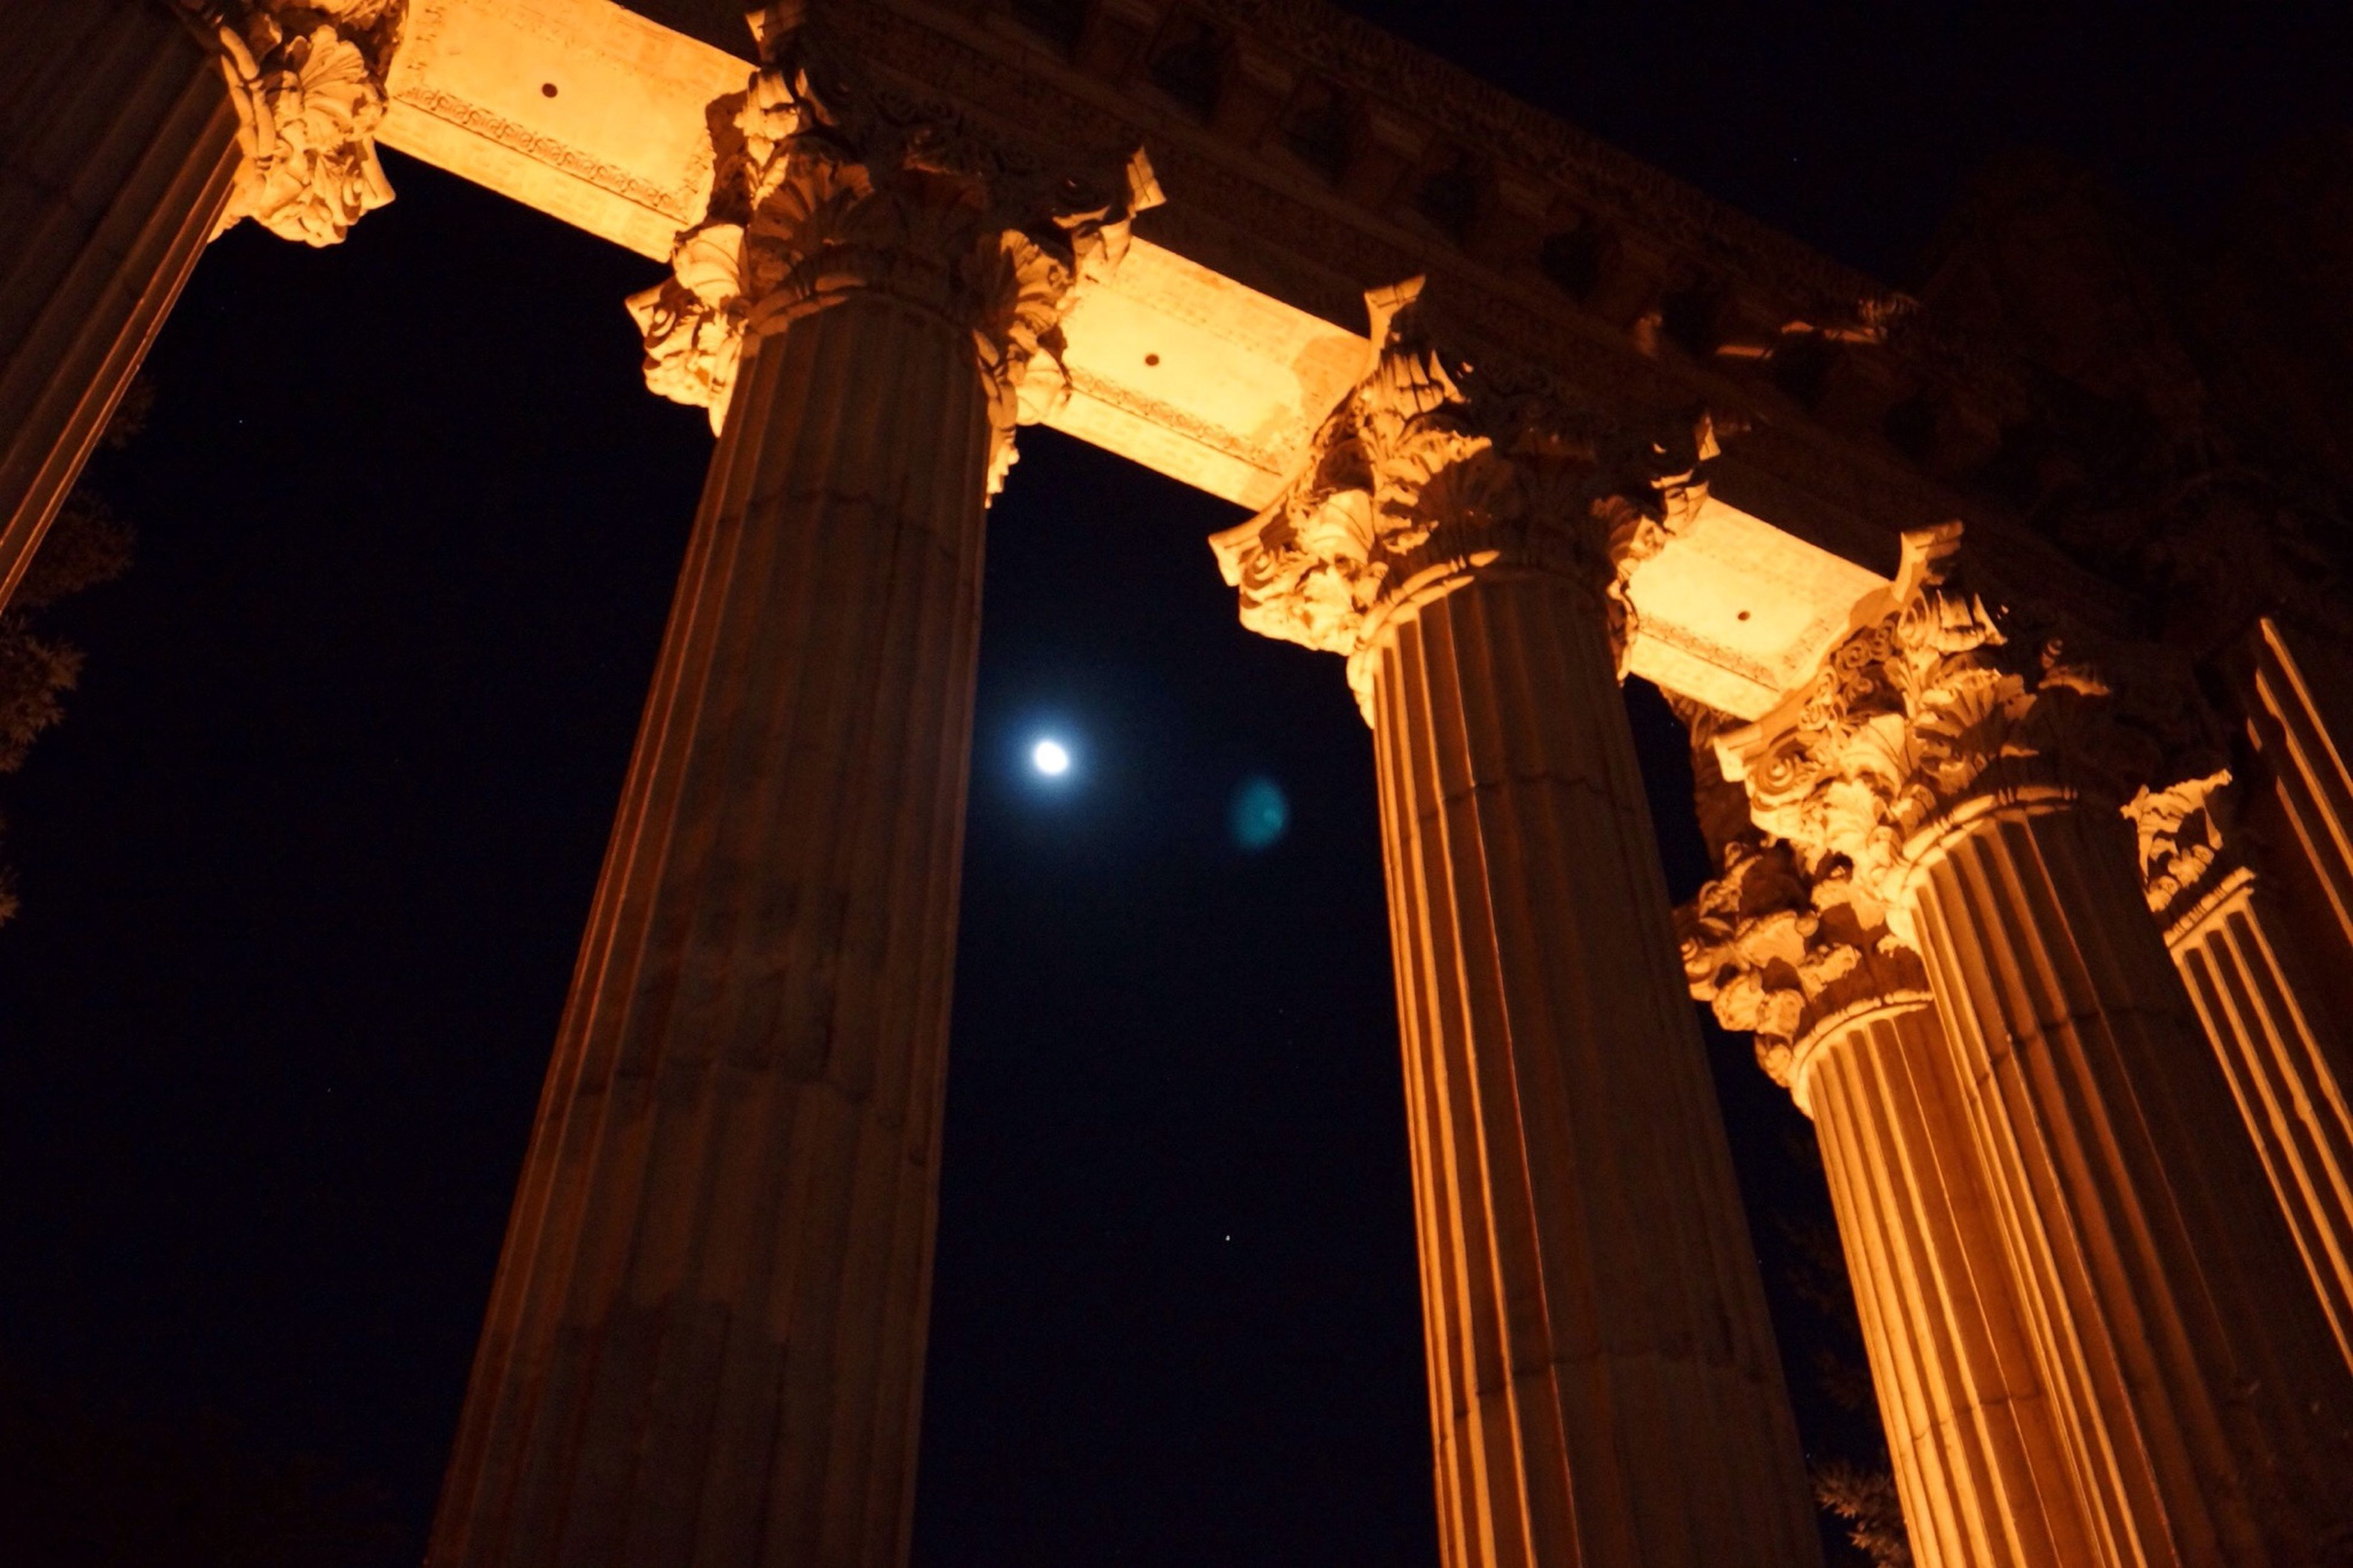 architecture, built structure, low angle view, night, architectural column, history, building exterior, column, religion, illuminated, old, famous place, travel destinations, arch, clear sky, place of worship, spirituality, sky, church